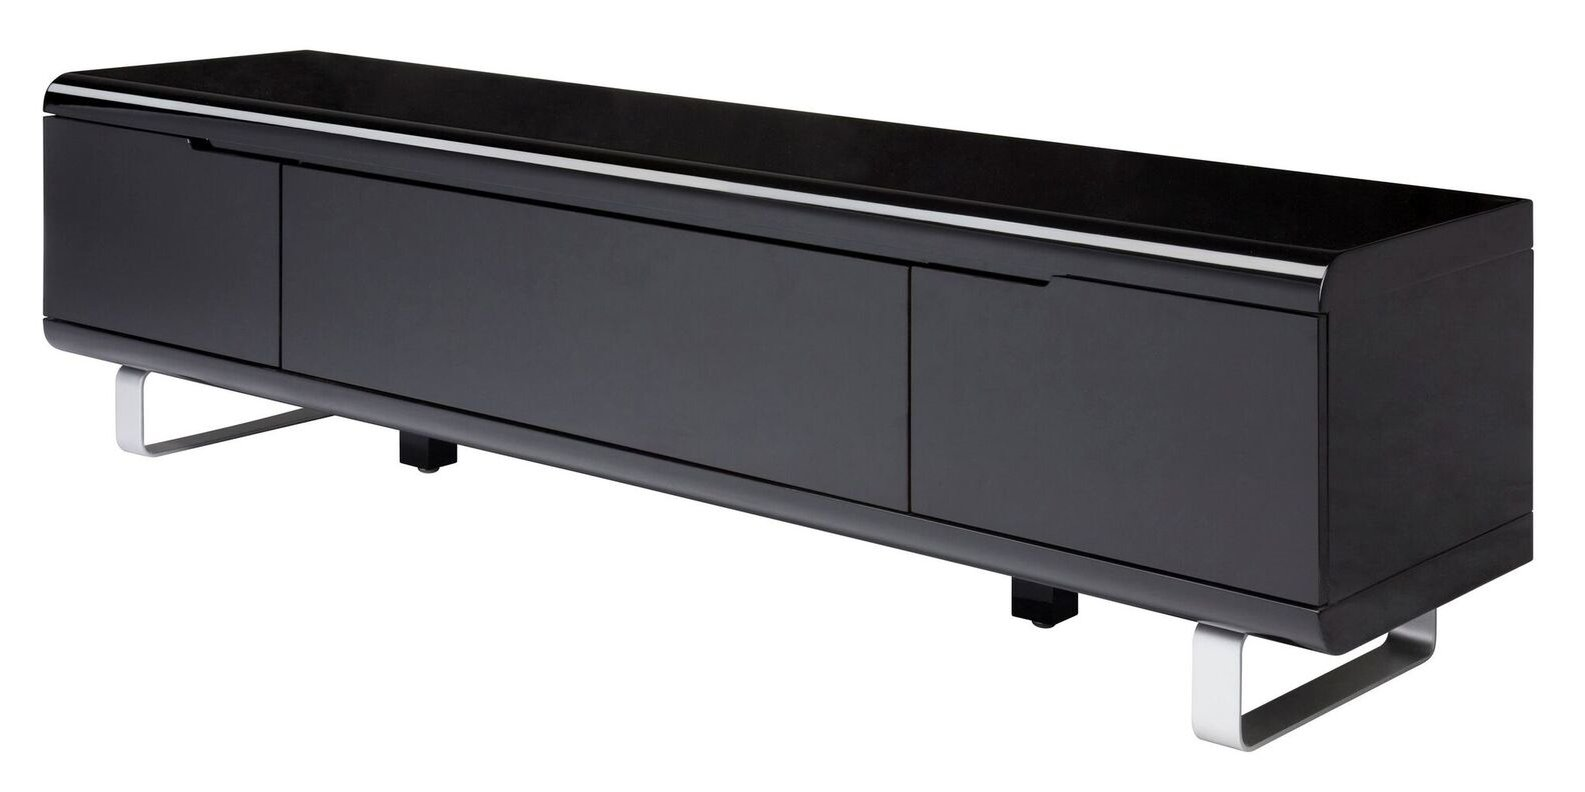 tv lowboard spacy hochglanz schwarz kommode sideboard. Black Bedroom Furniture Sets. Home Design Ideas